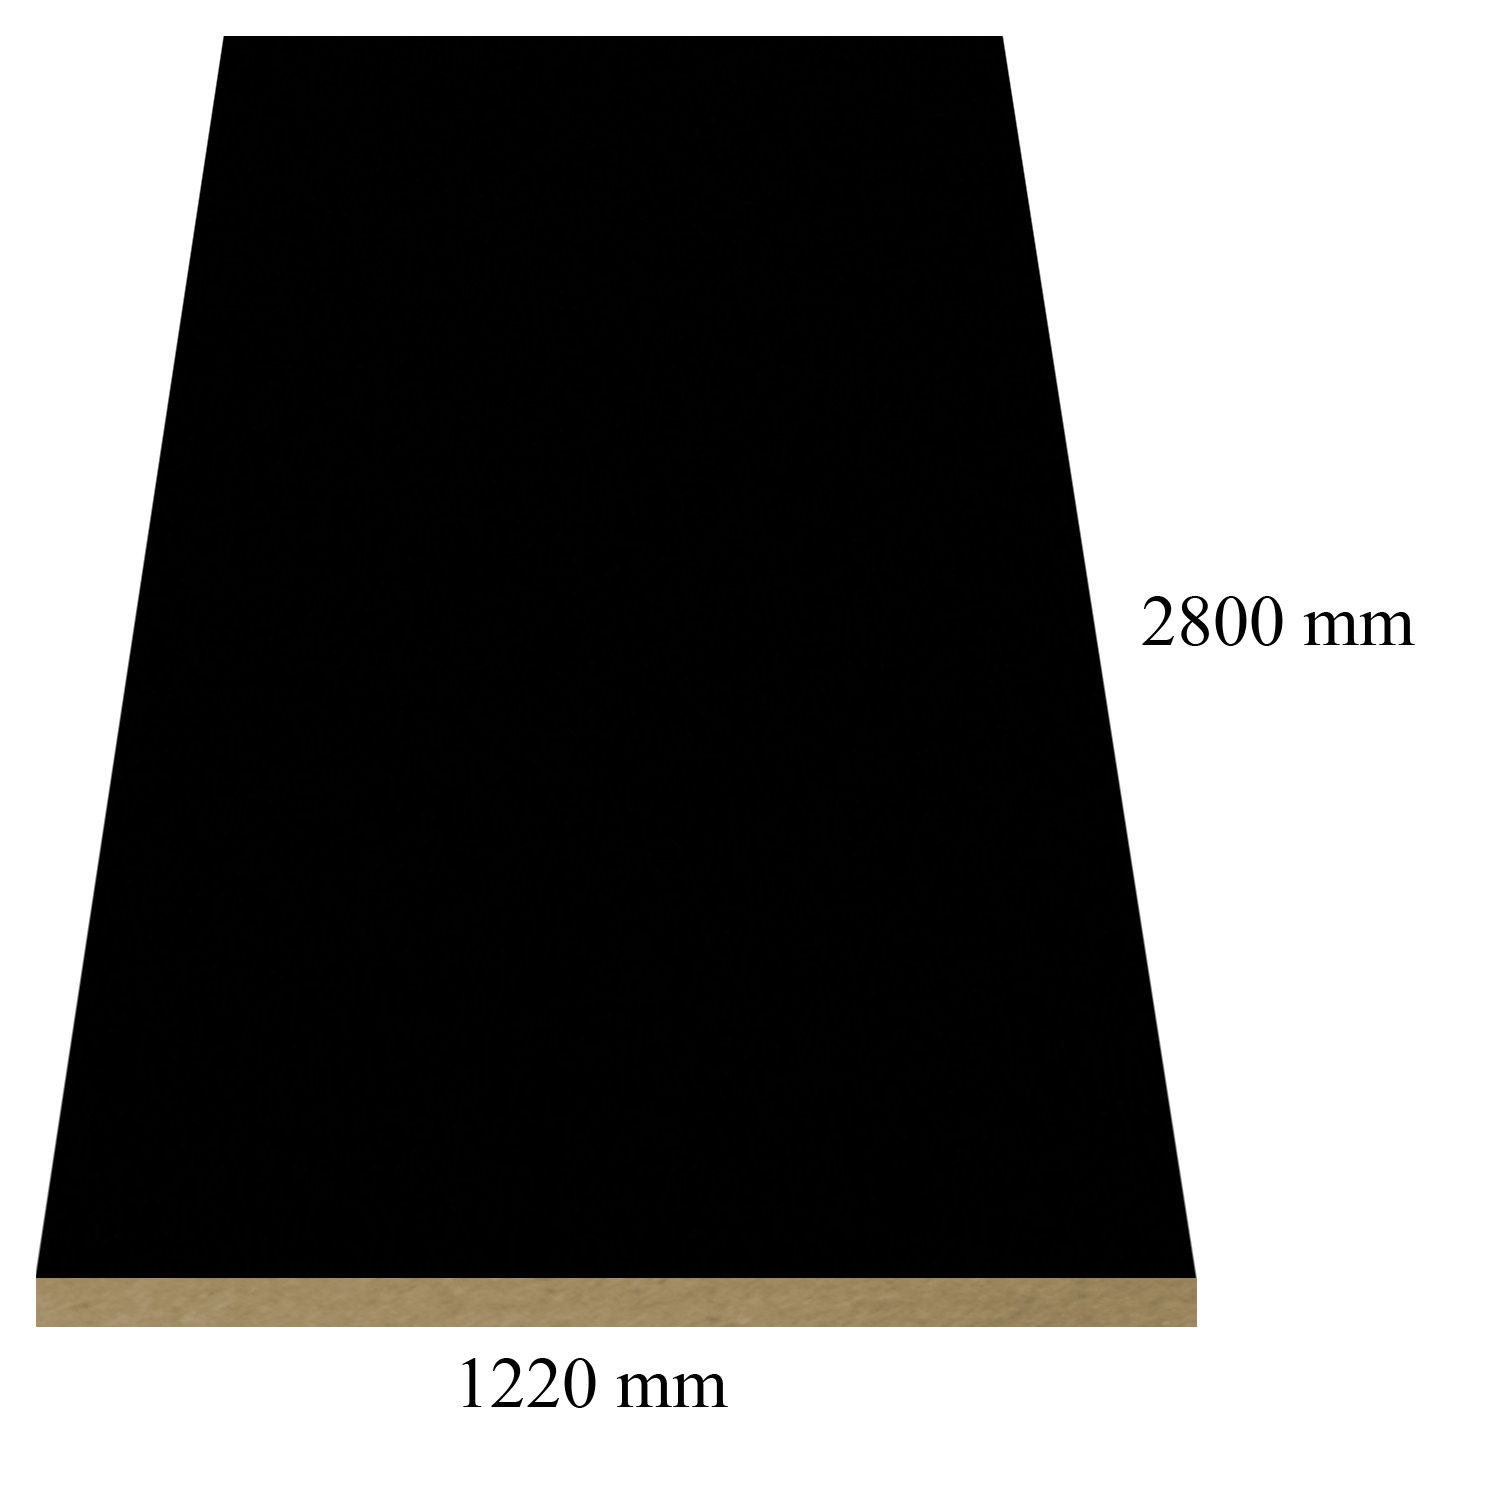 168 Black high gloss - PVC coated 18 mm MDF